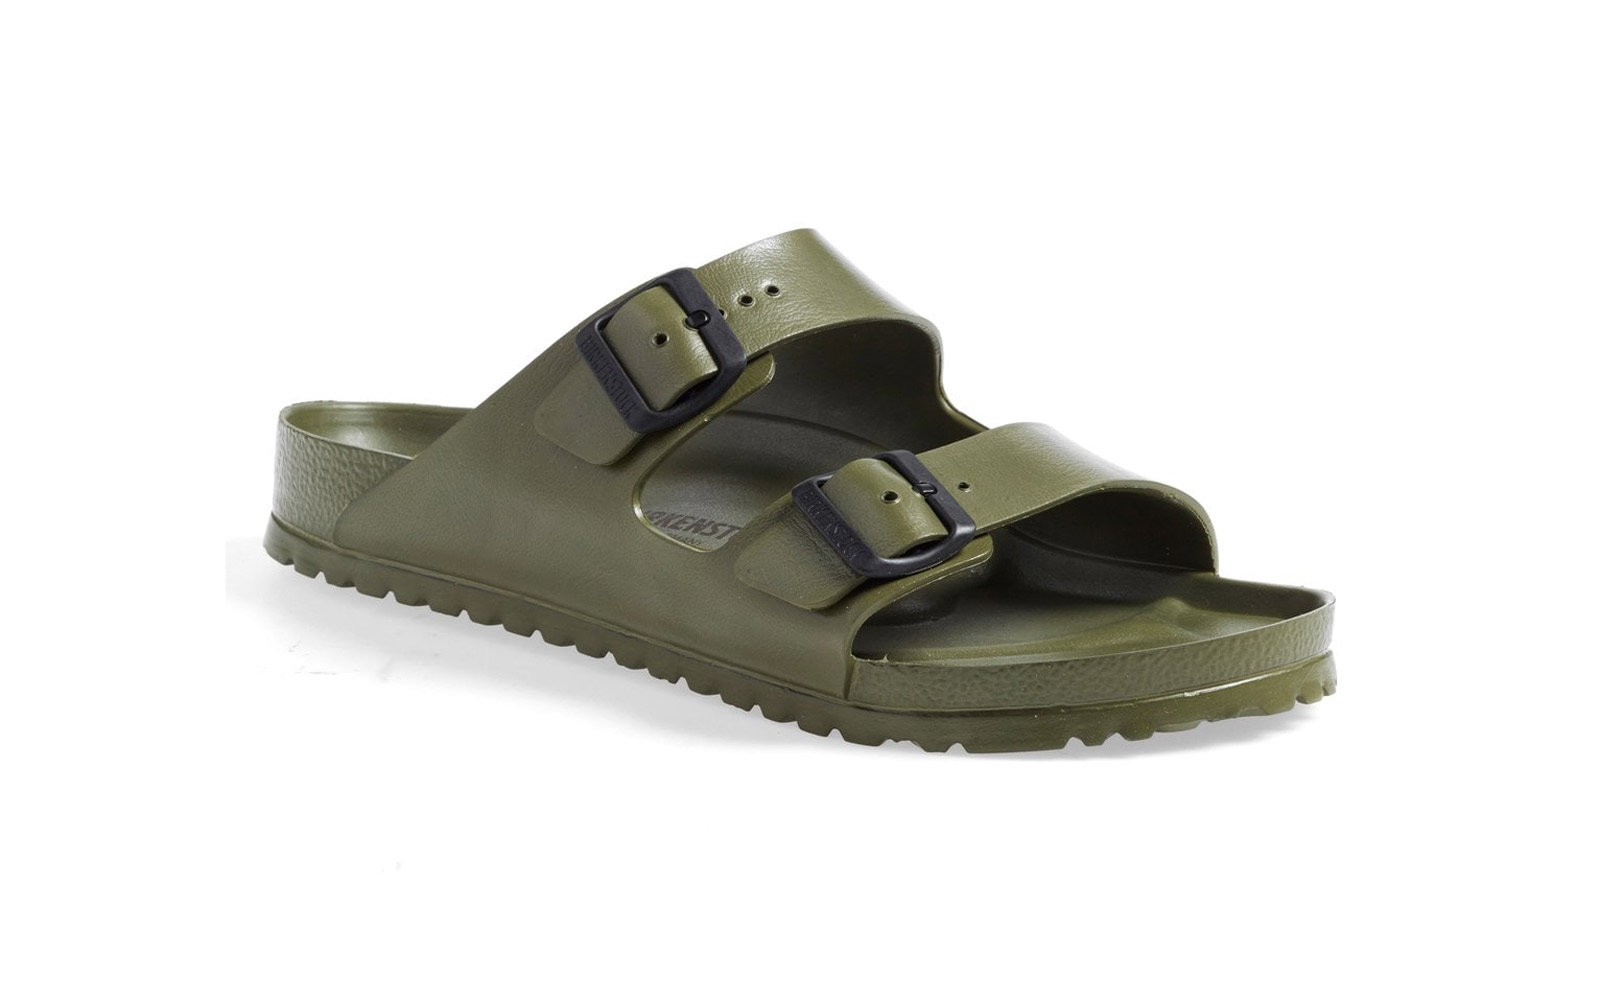 f9ab9a84fec The Best Men s Sandals to Pack for Your Next Vacation